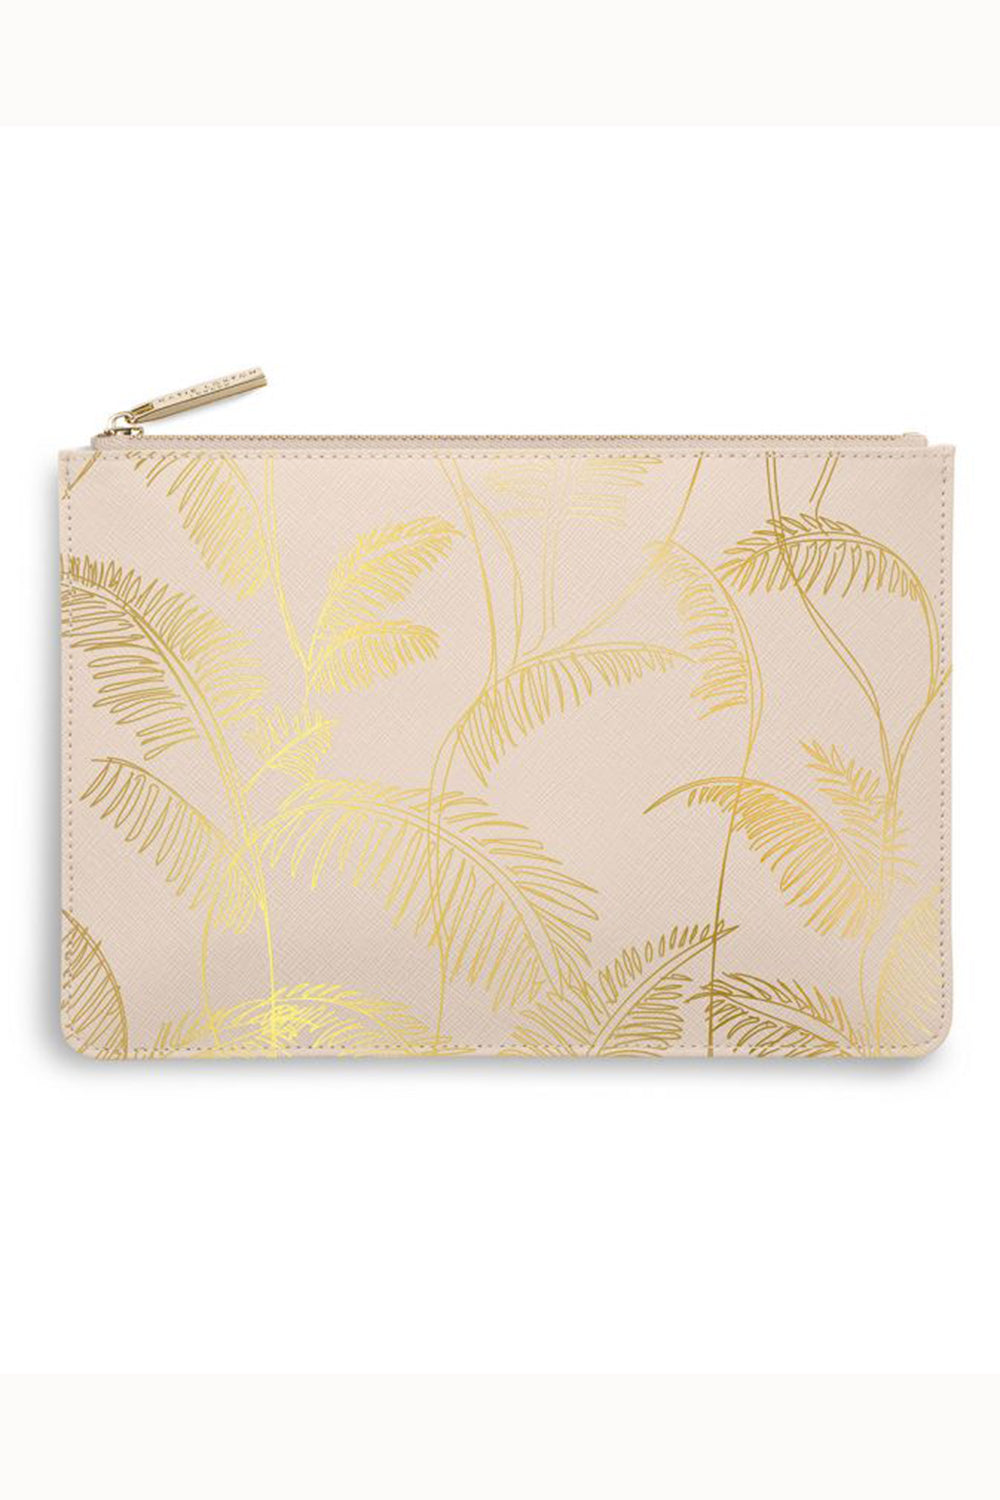 Perfect Pouch - Nude Pink